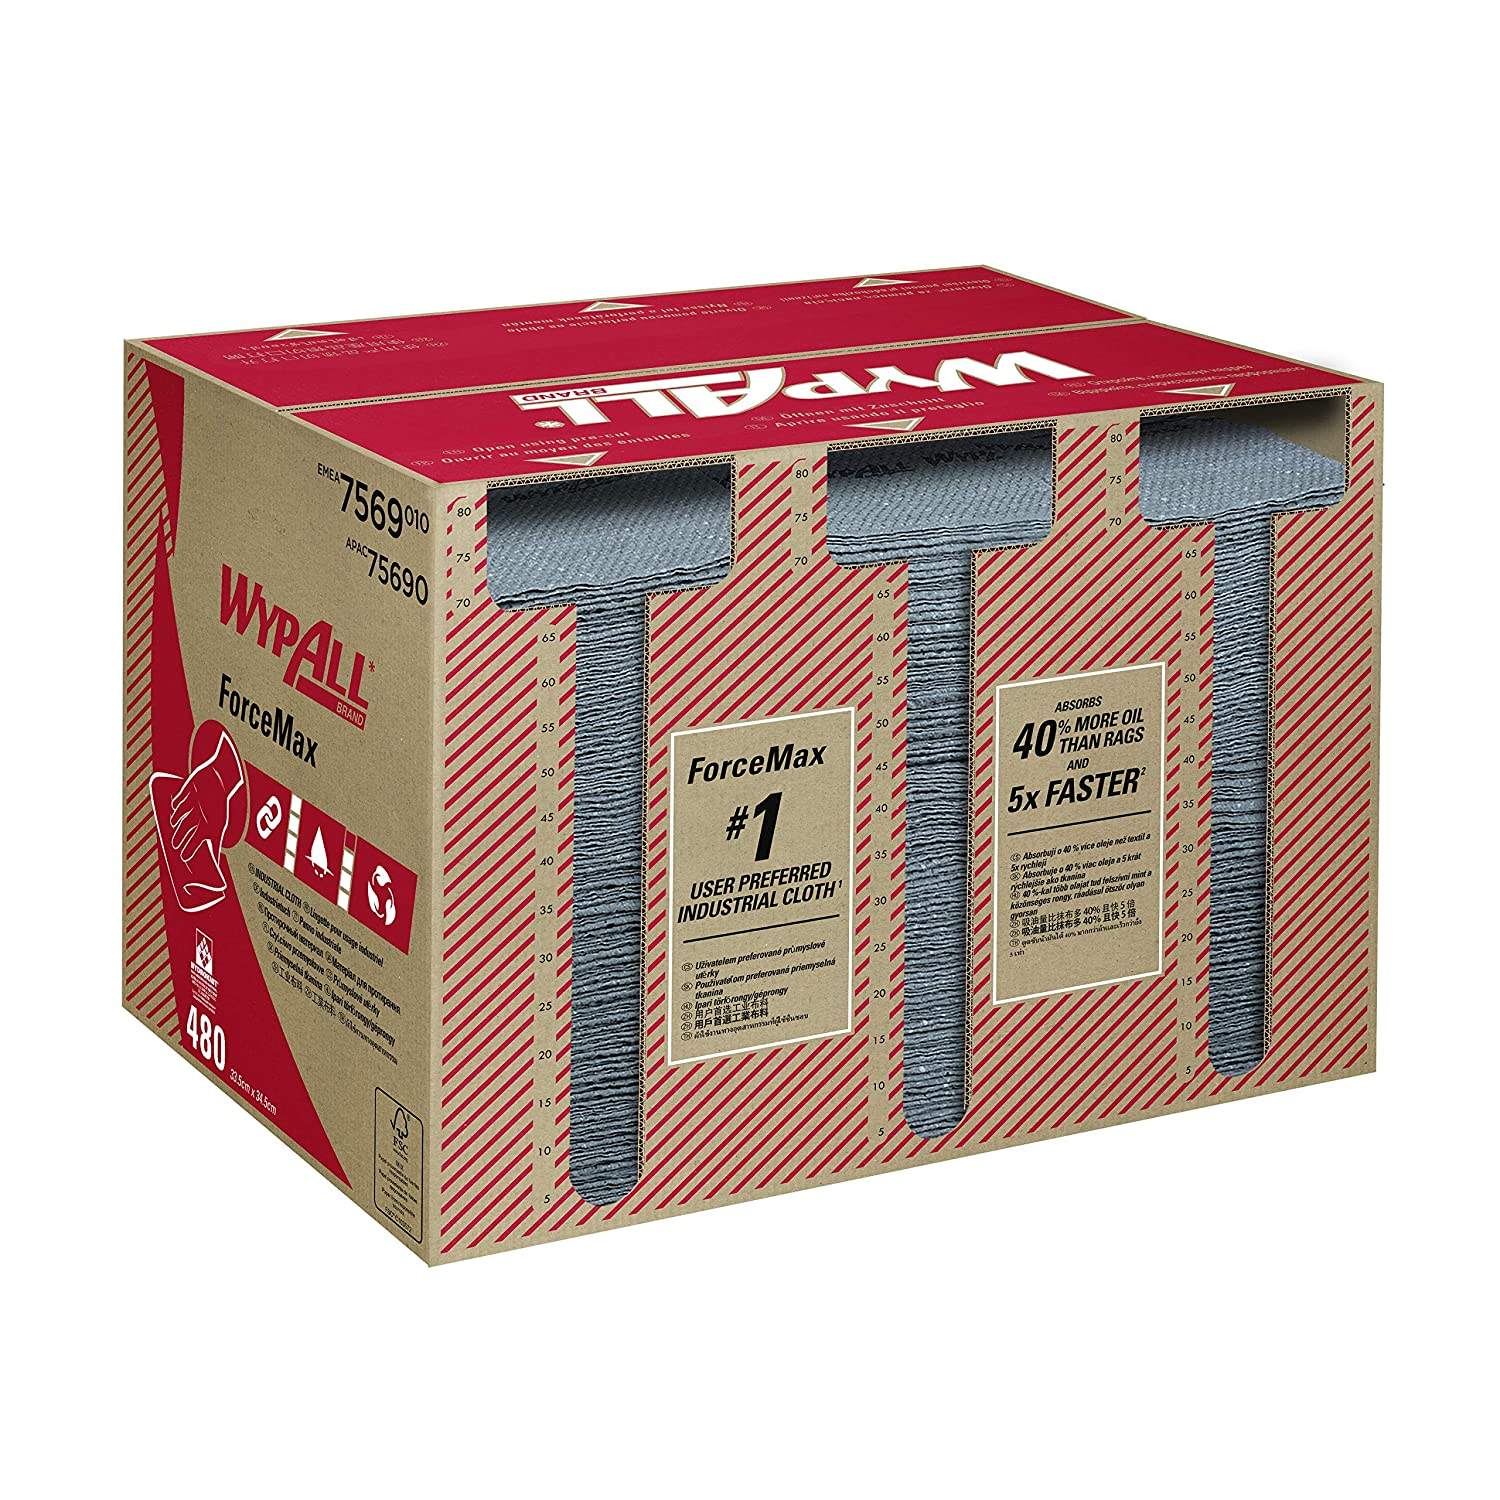 WypAll* ForceMax Industrial Cloths, 7569. 1 box x 480 grey, 1 ply cloths (480 total) Kimberly-Clark Professional